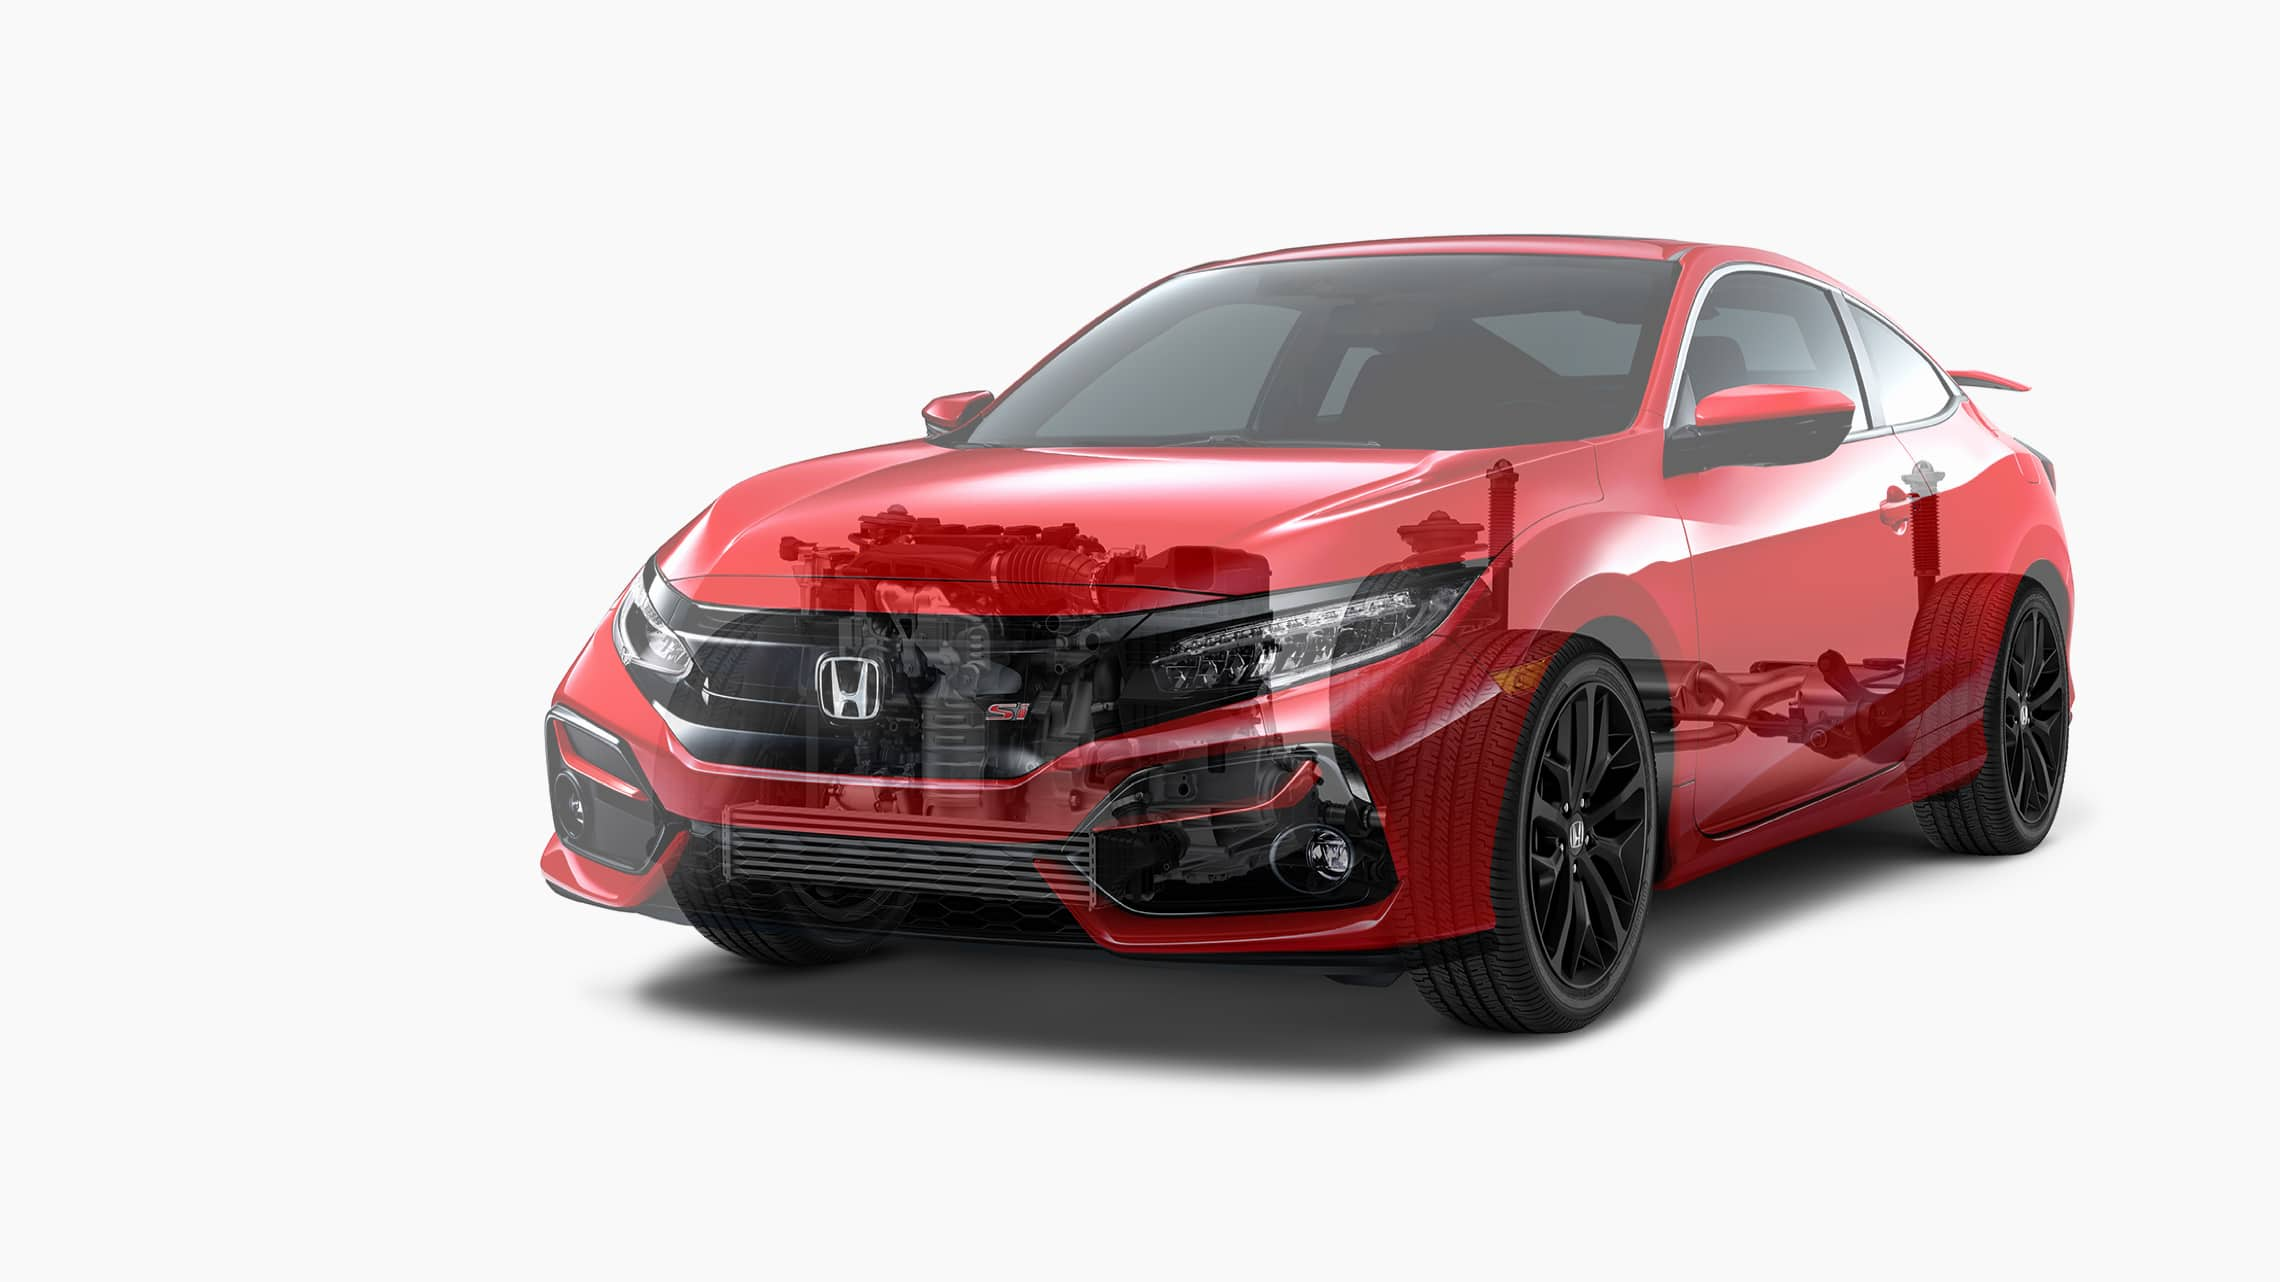 Front 7/8 driver's side view of 2020 Honda Civic Si Coupe in Rallye Red displaying the powertrain and adaptive damper system layout rendering.